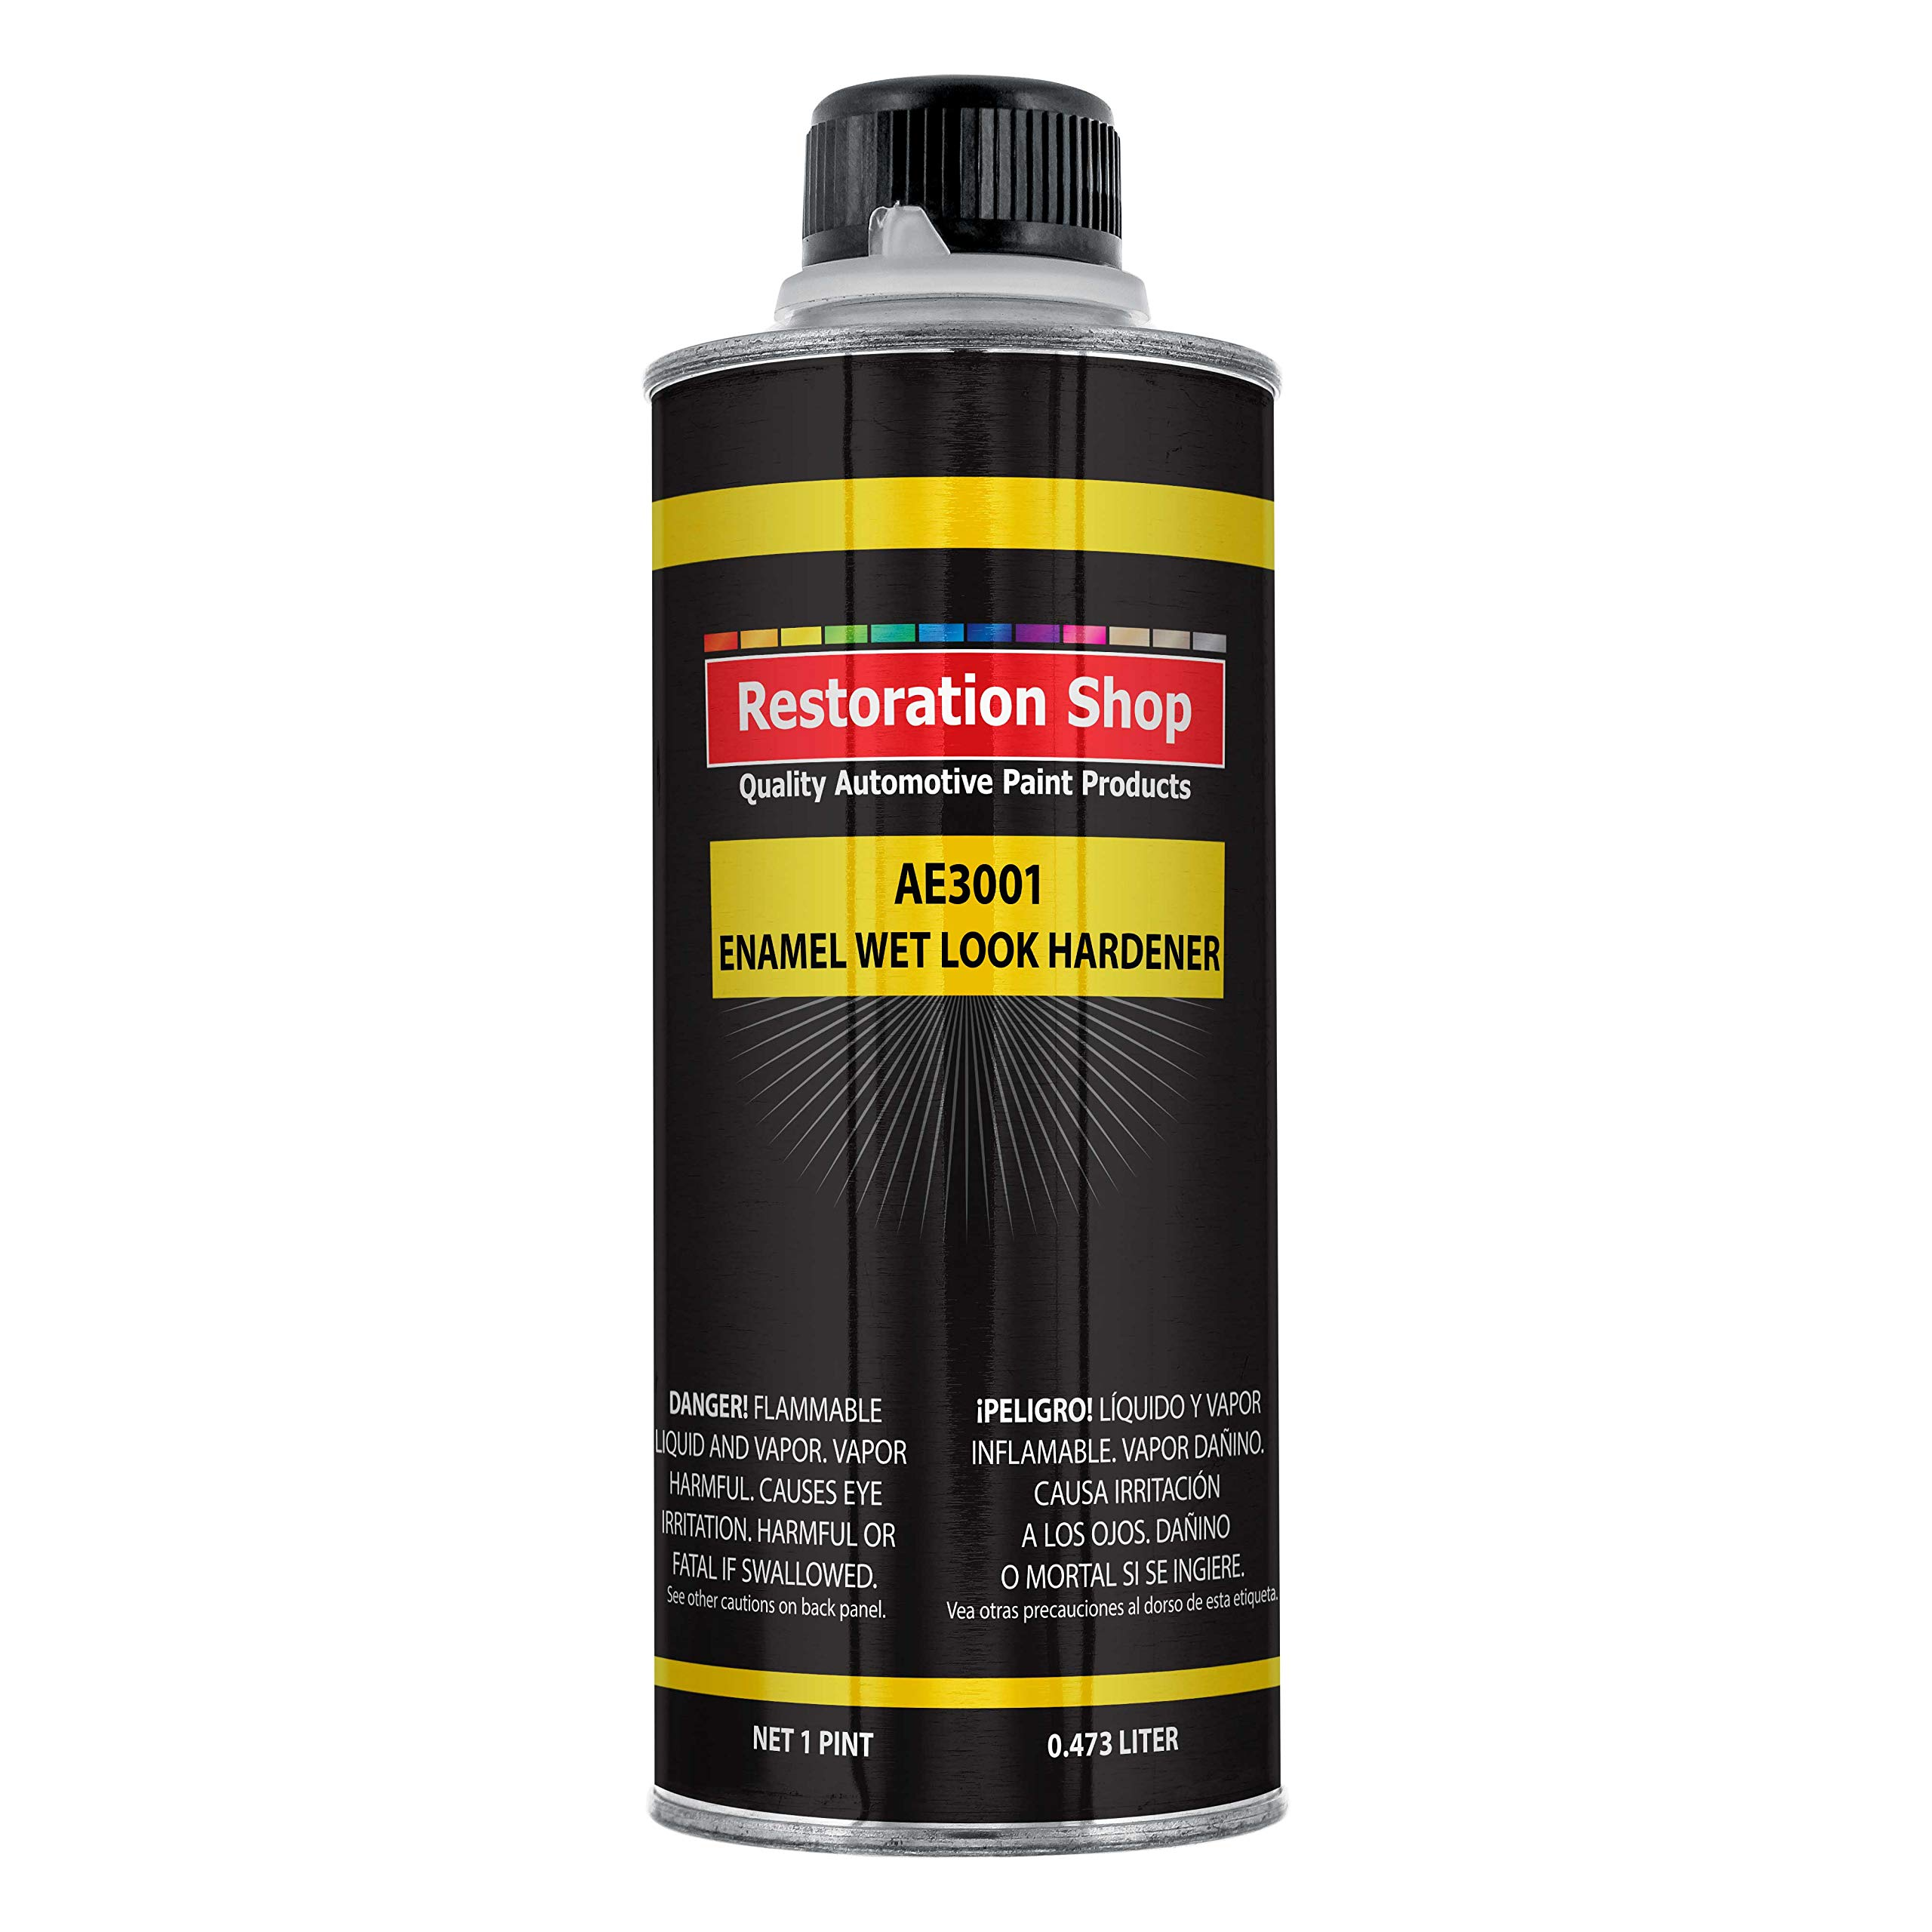 Restoration Shop AE3001 Acrylic Enamel Wet Look Hardener Pint Can AE Acrylic Enamel Paints and be Used Universally as Catalyst in Many Brands of Acrylic Enamel and Enamel Paints by Restoration Shop